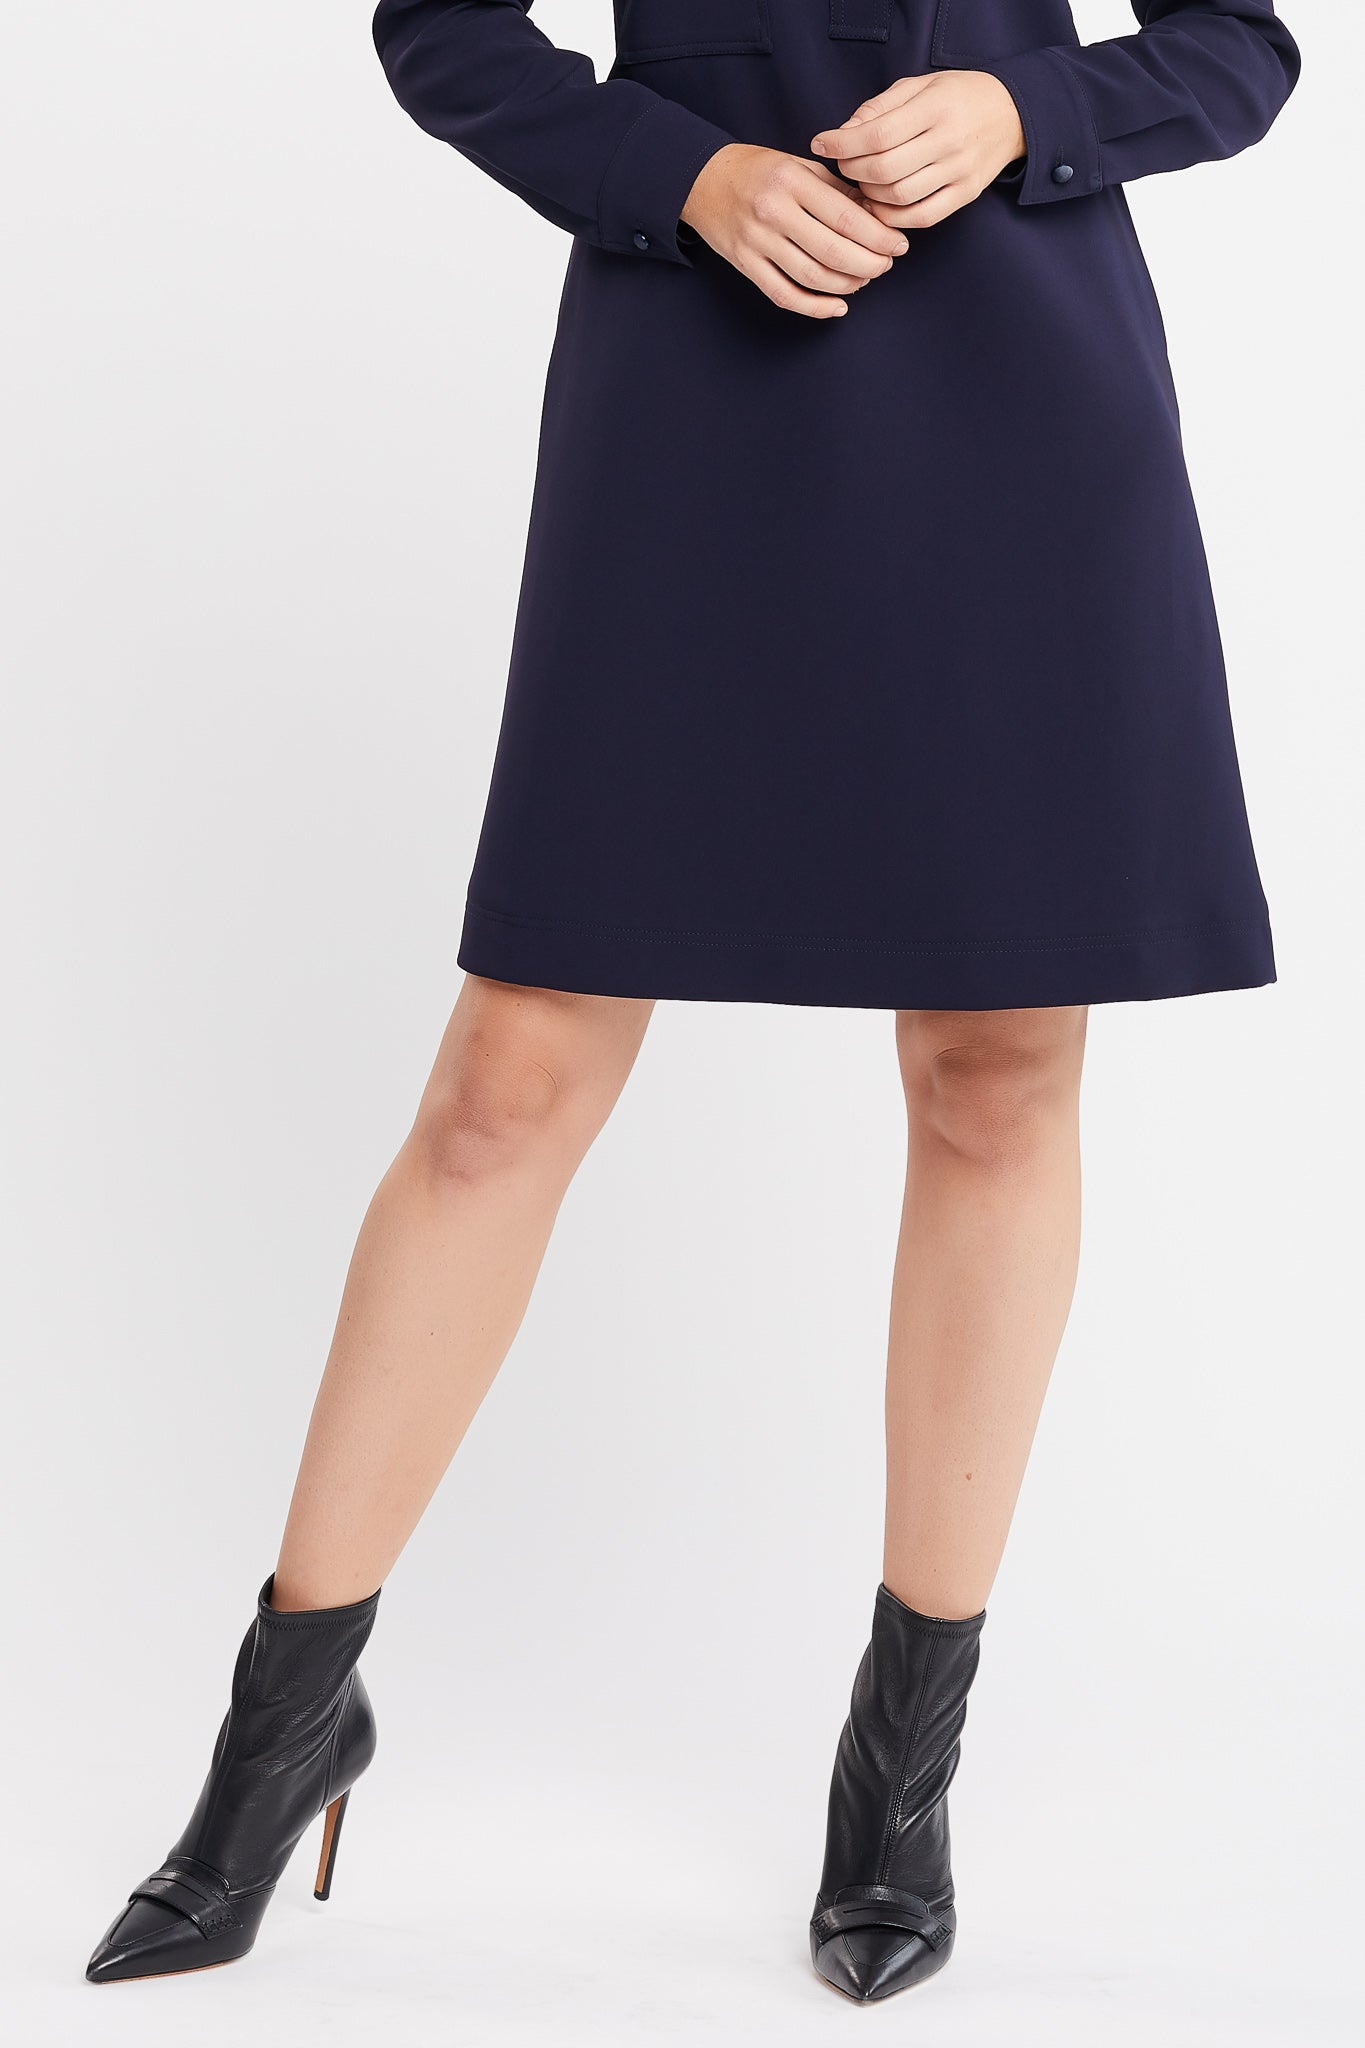 Imari Long Sleeve a-line Navy Work Dress